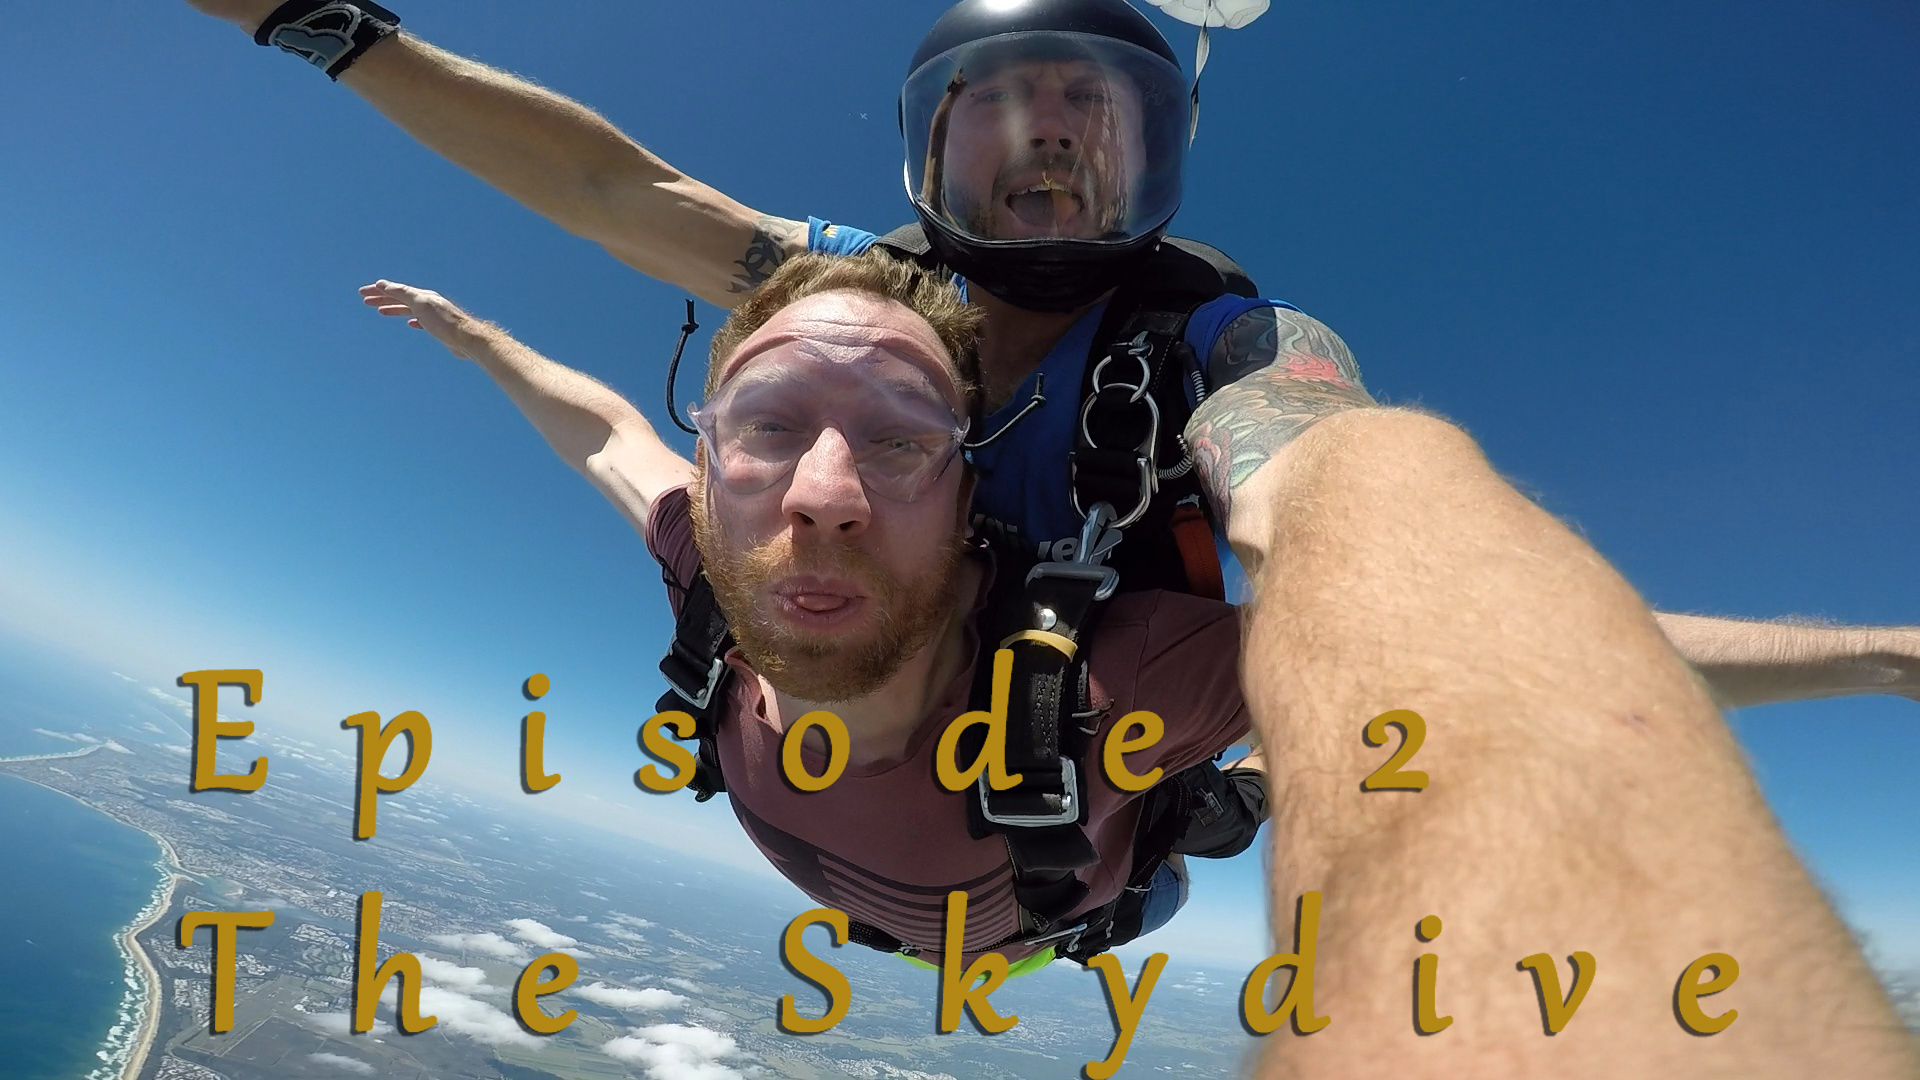 Episode 2 - The Skydive